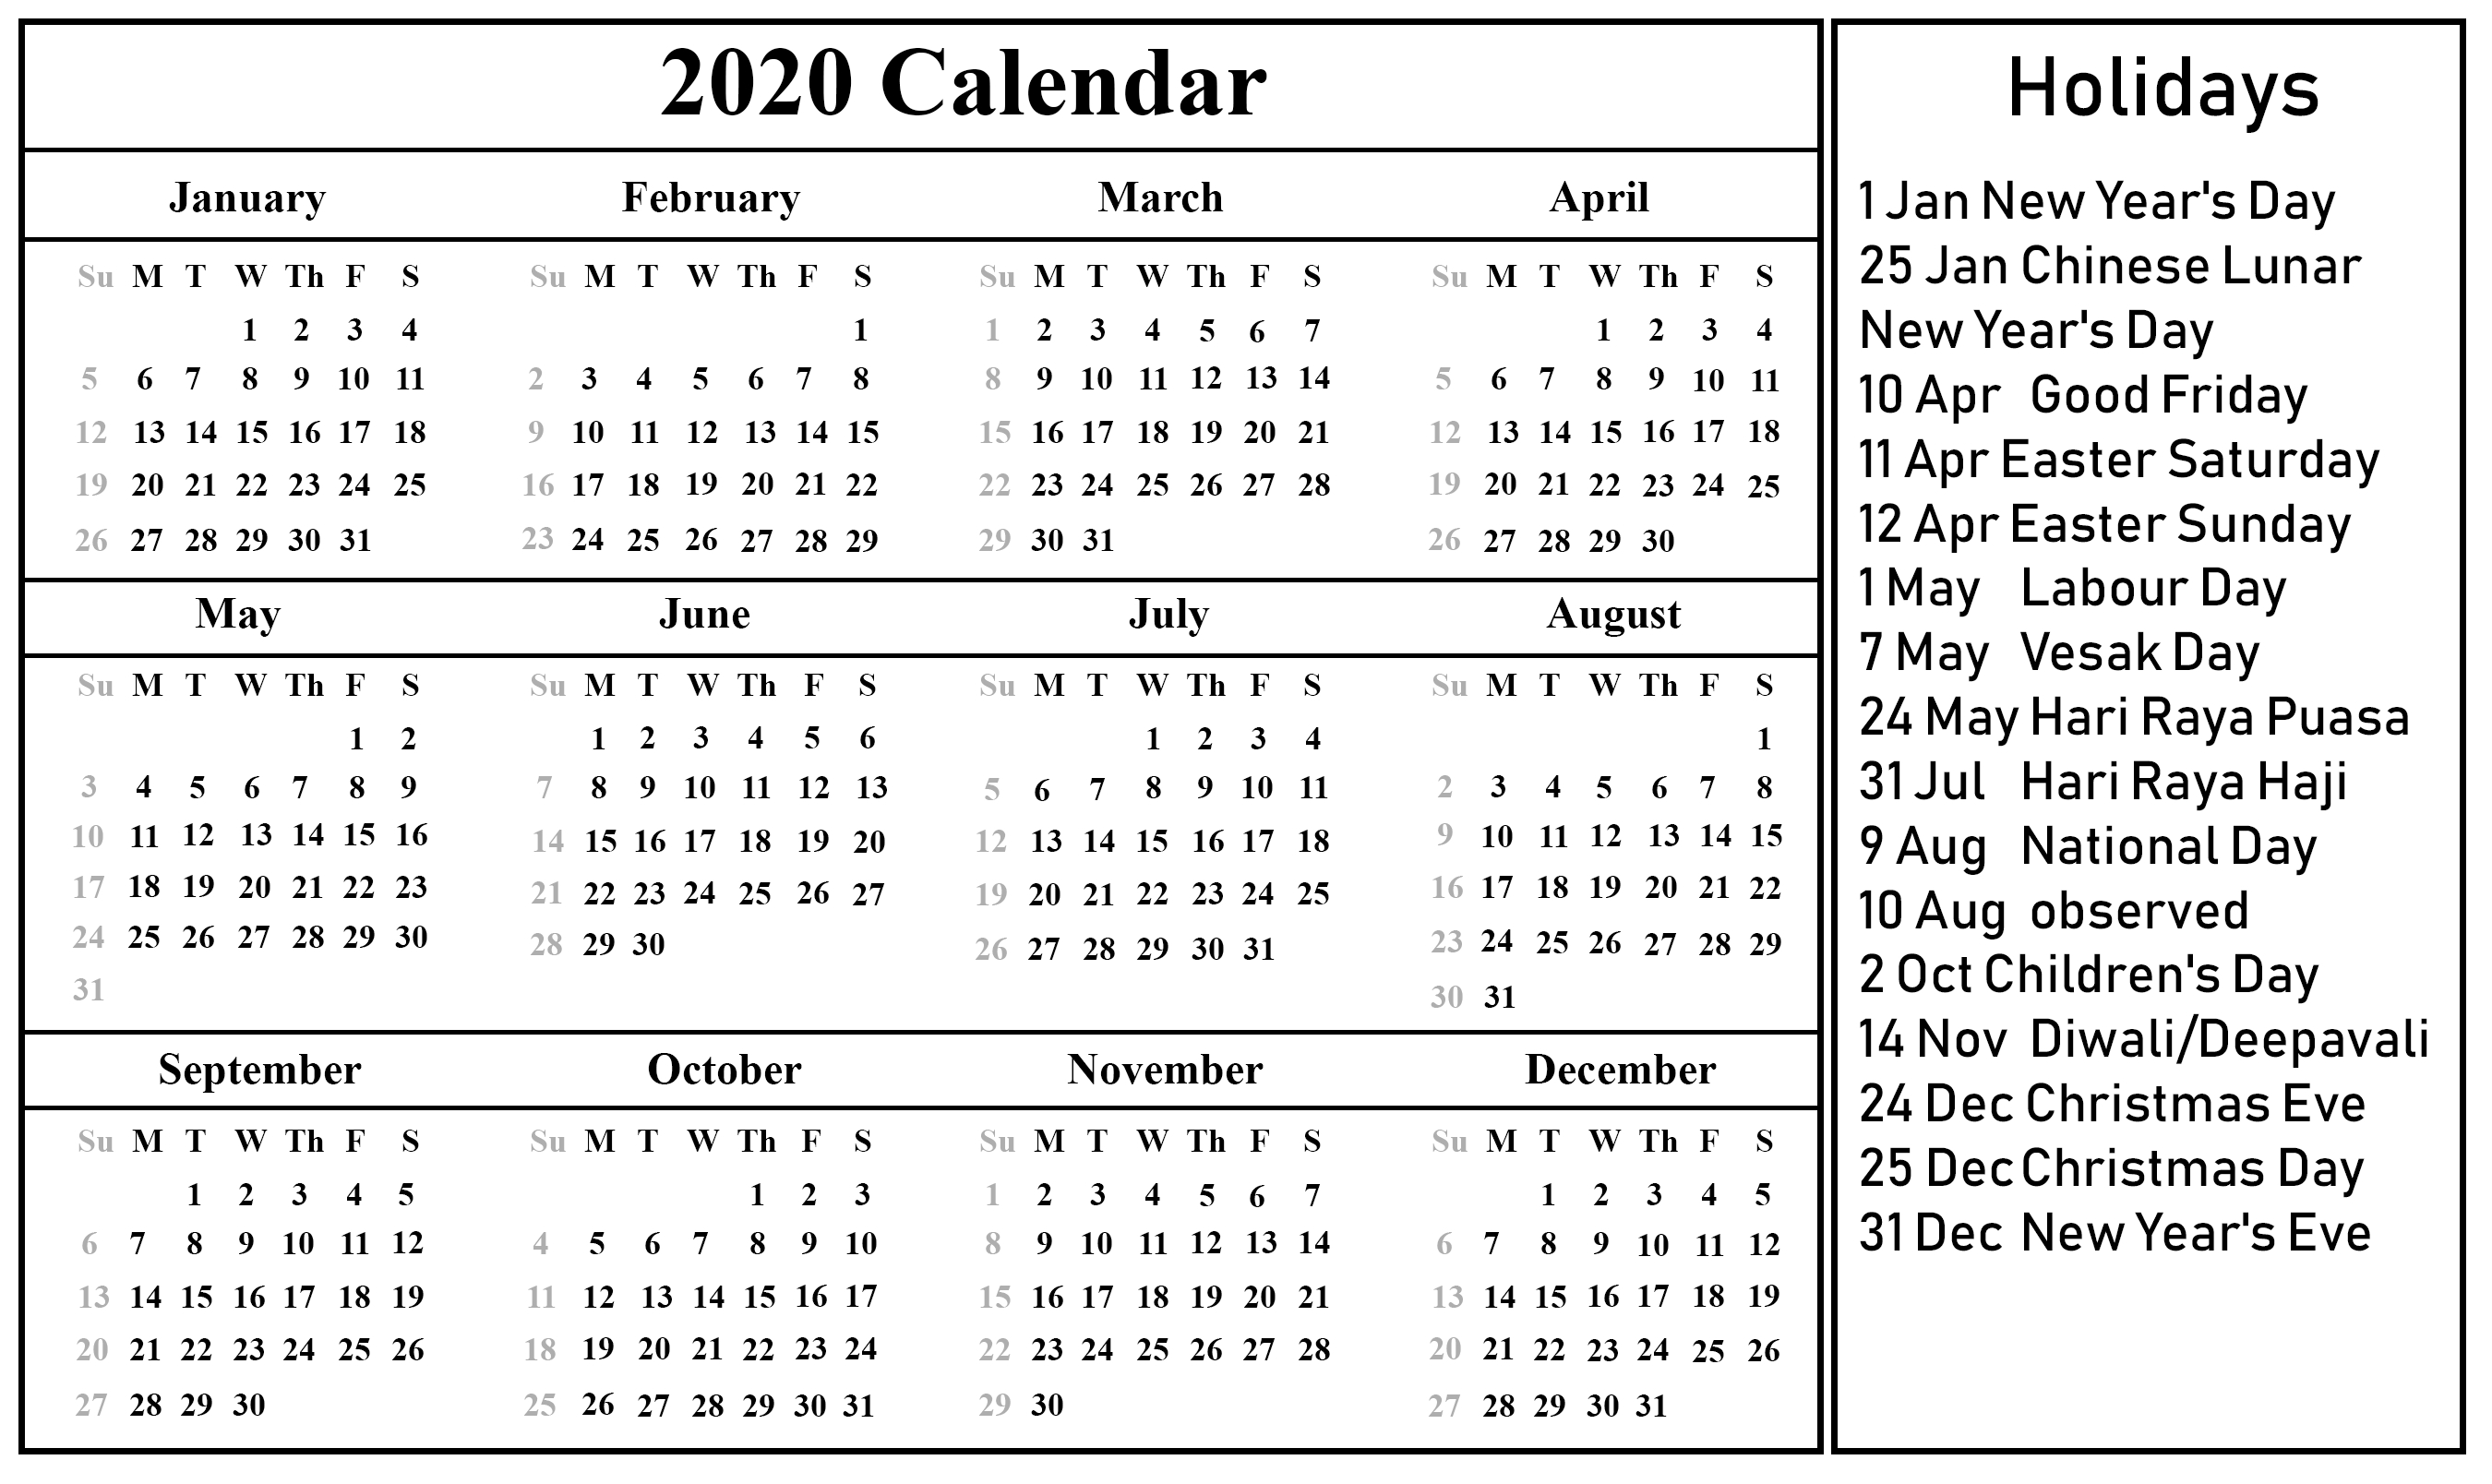 Free Printable Singapore Calendar 2020 With Holidays inside National Days June 2020